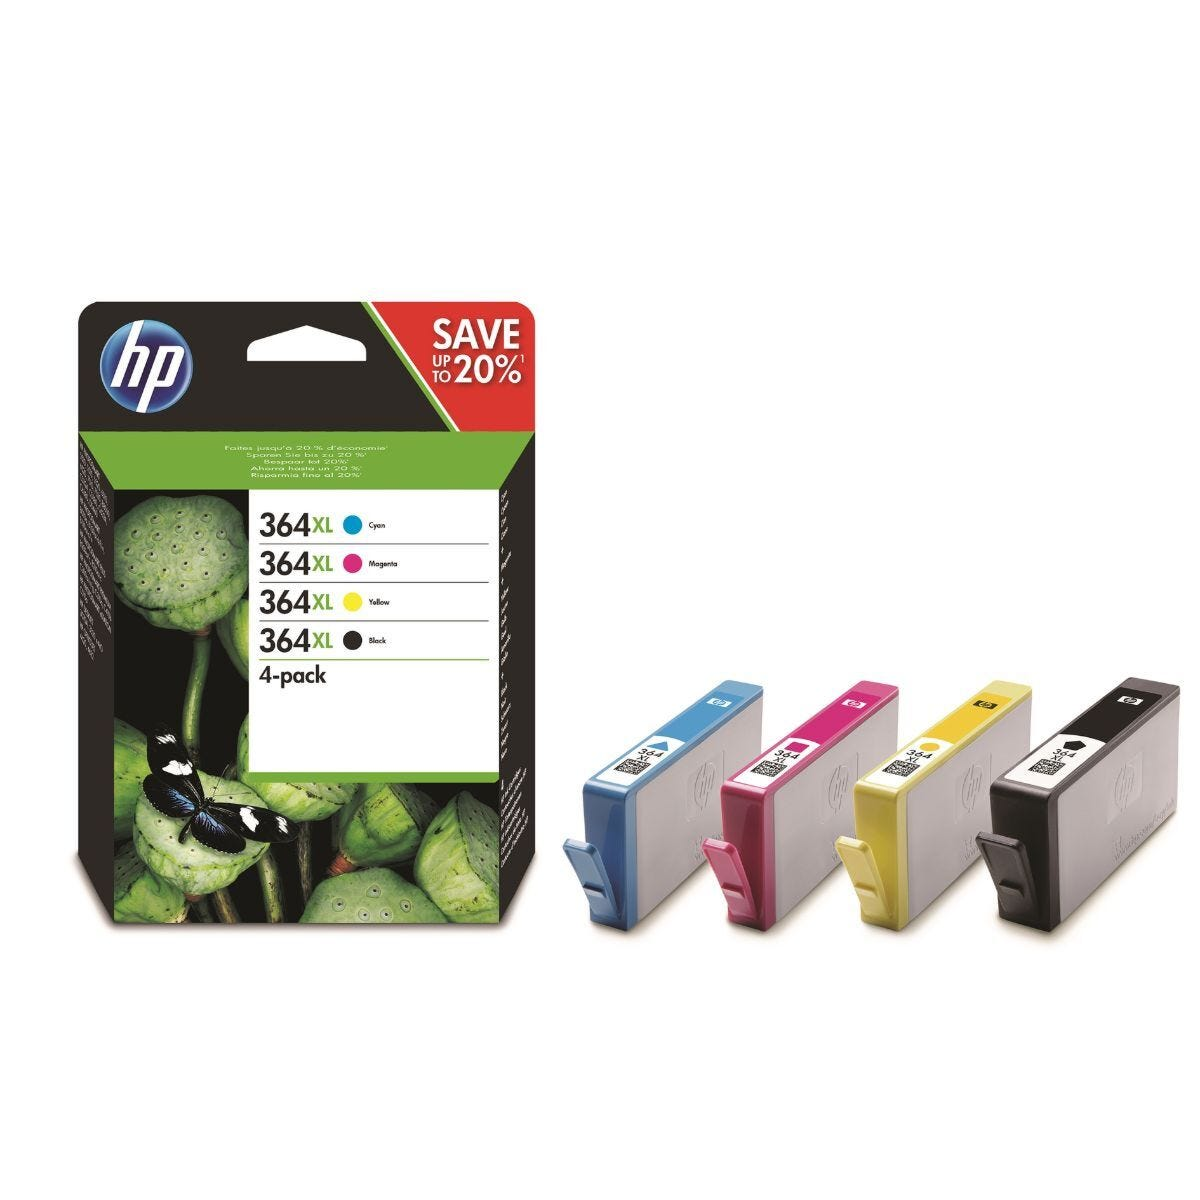 HP 364XL CMYK Original Ink Cartridges Combo 4 Pack